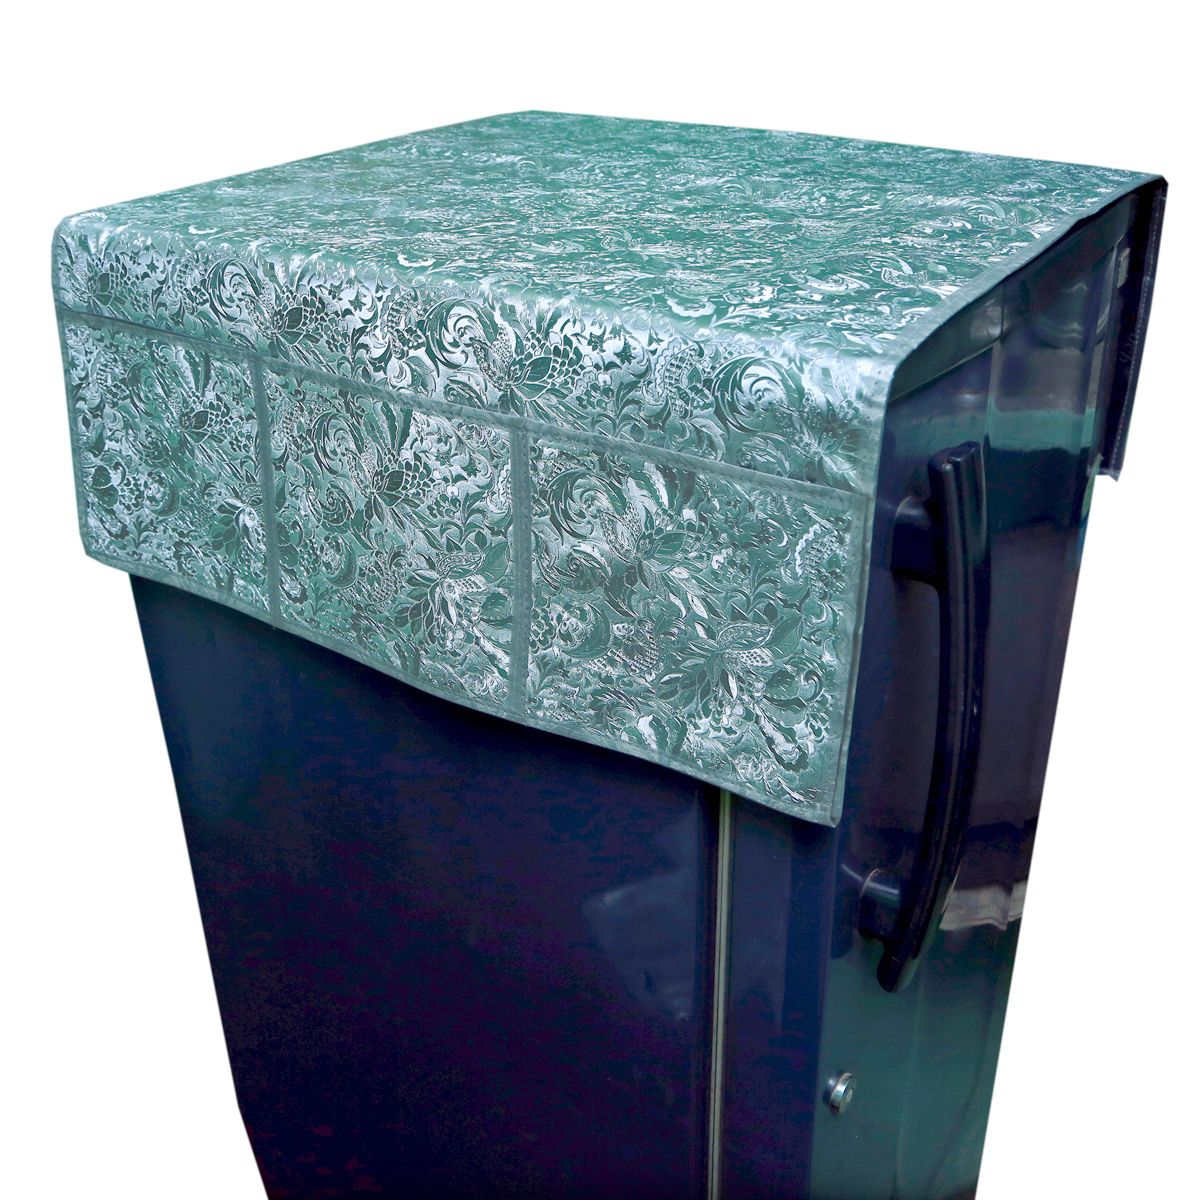 Kuber Industries™Decorative Fridge Cover/ Refrigerator cover- Waterproof (Grey Floral Design)